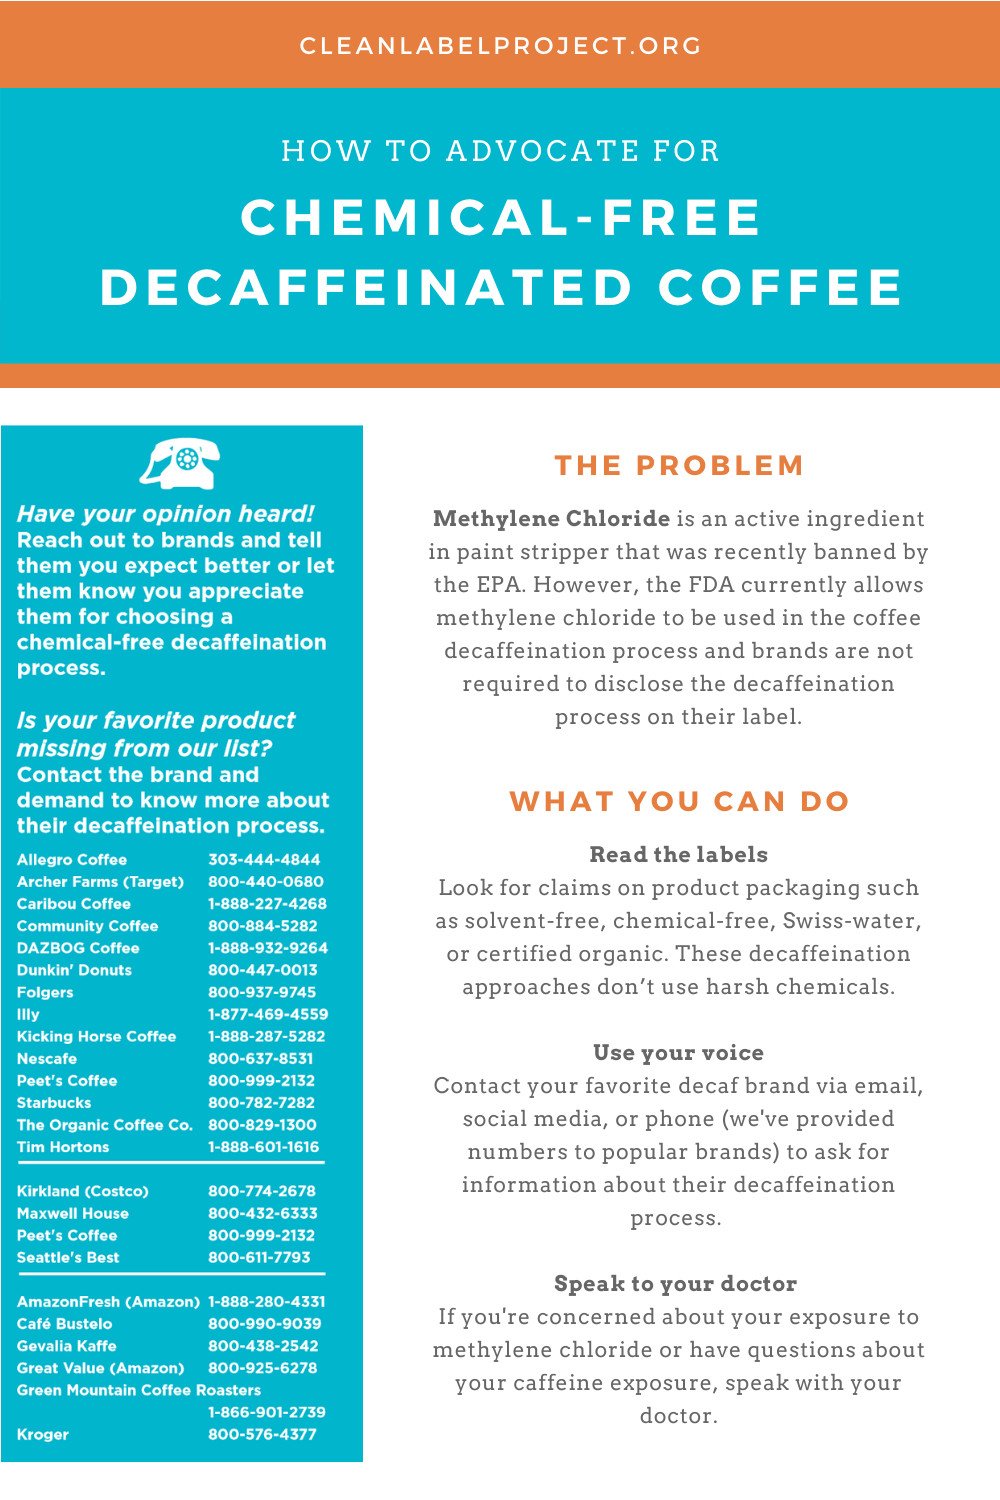 What Chemicals Are In Your Coffee?